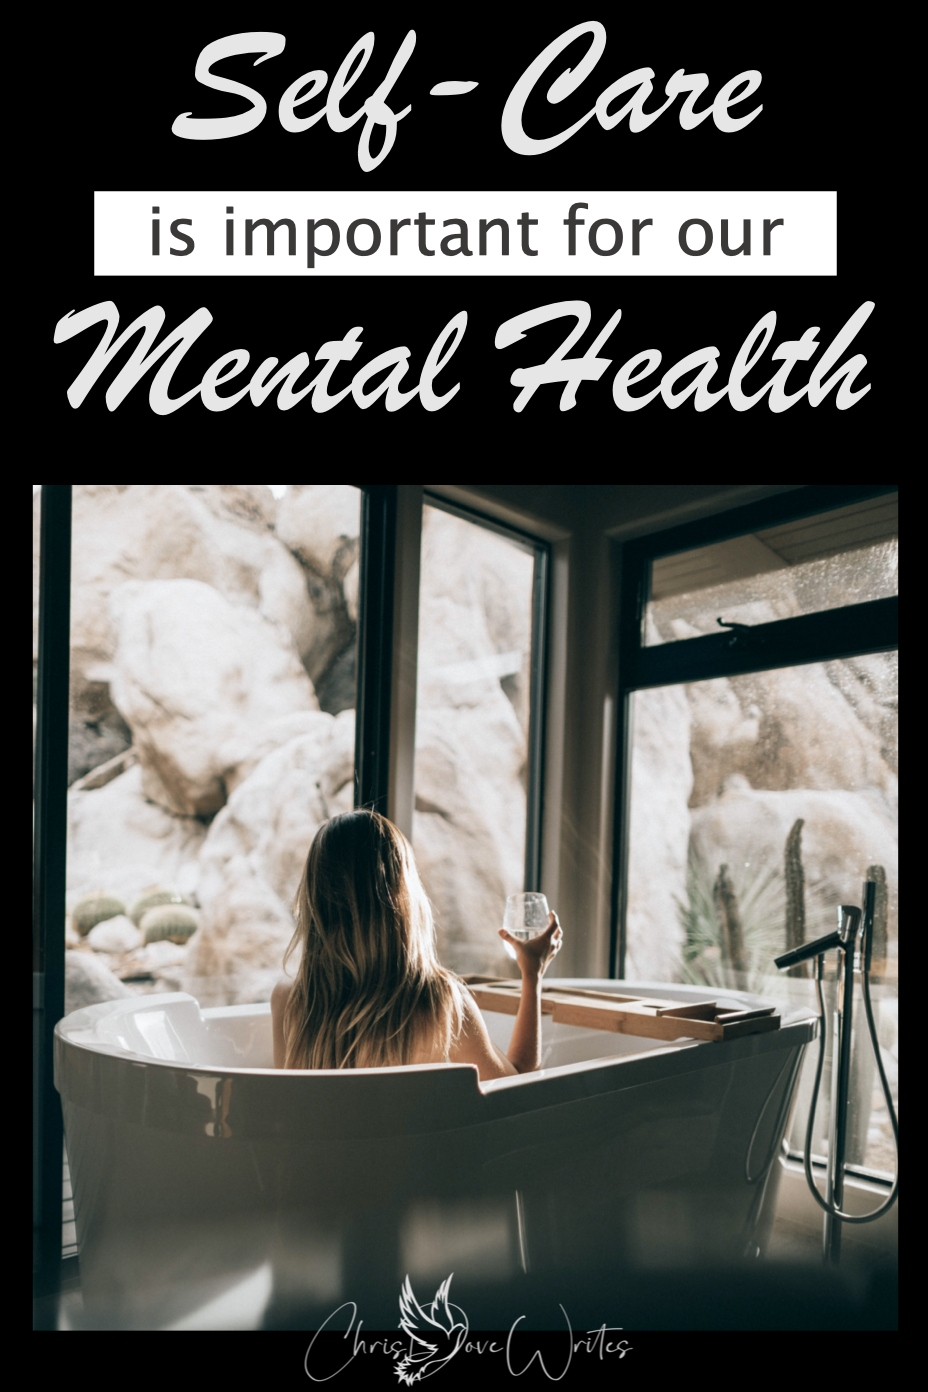 Self-Care and Mental Health